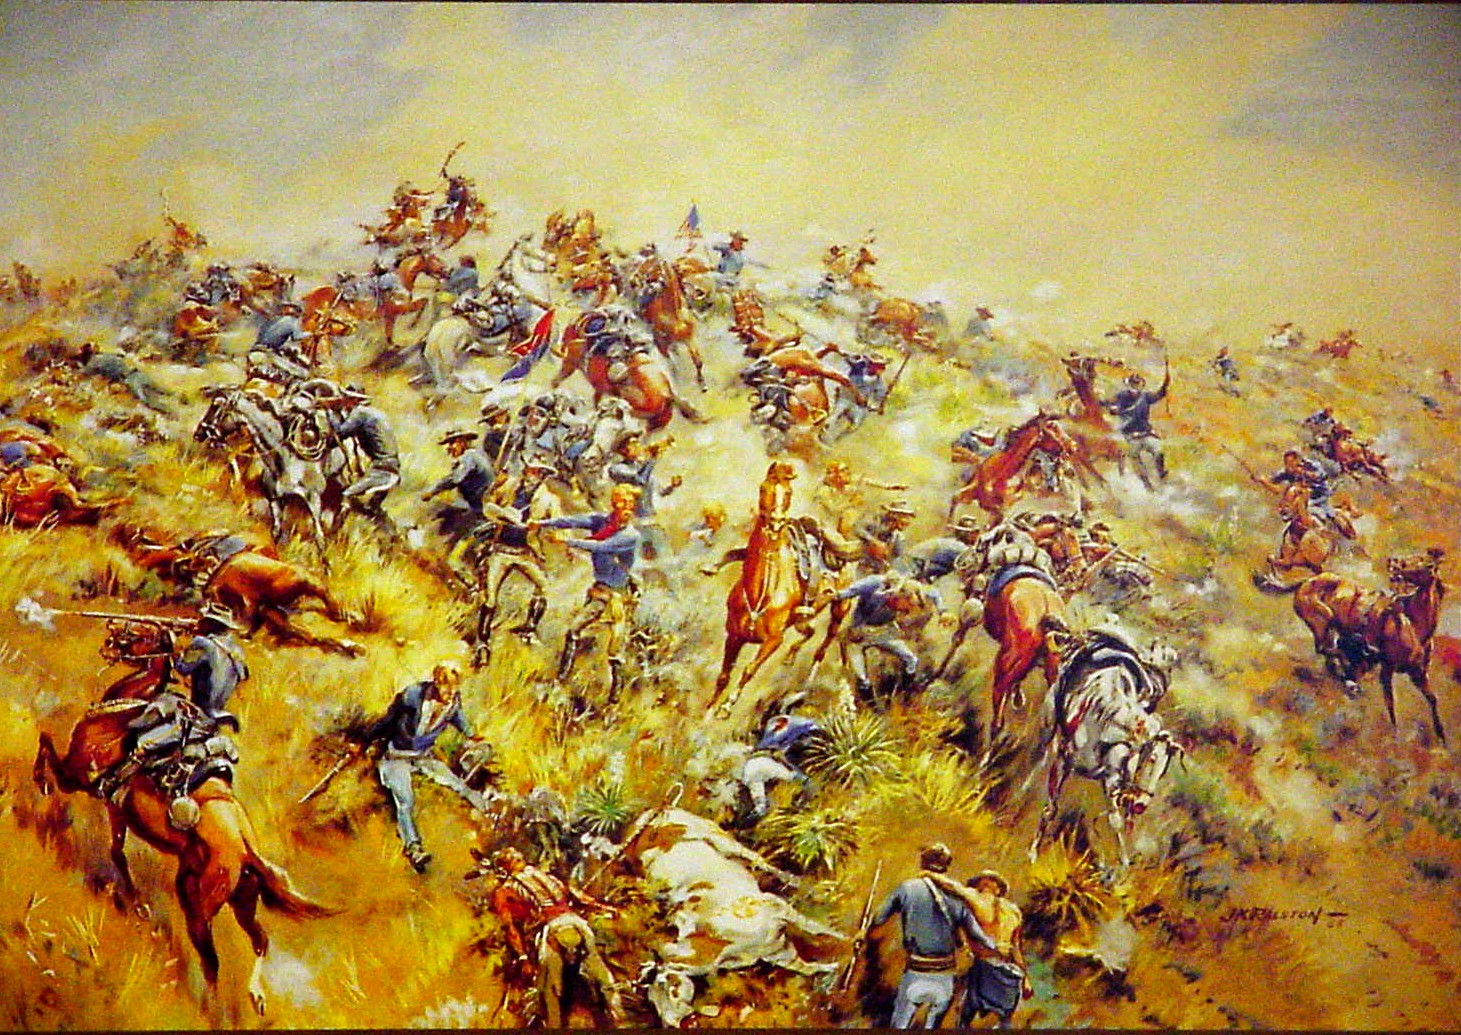 battle of little big horn Find little bighorn from a vast selection of collectibles get great deals on ebay  50 out of 5 stars - 3- original battle of little big horn artifacts horseshoe.